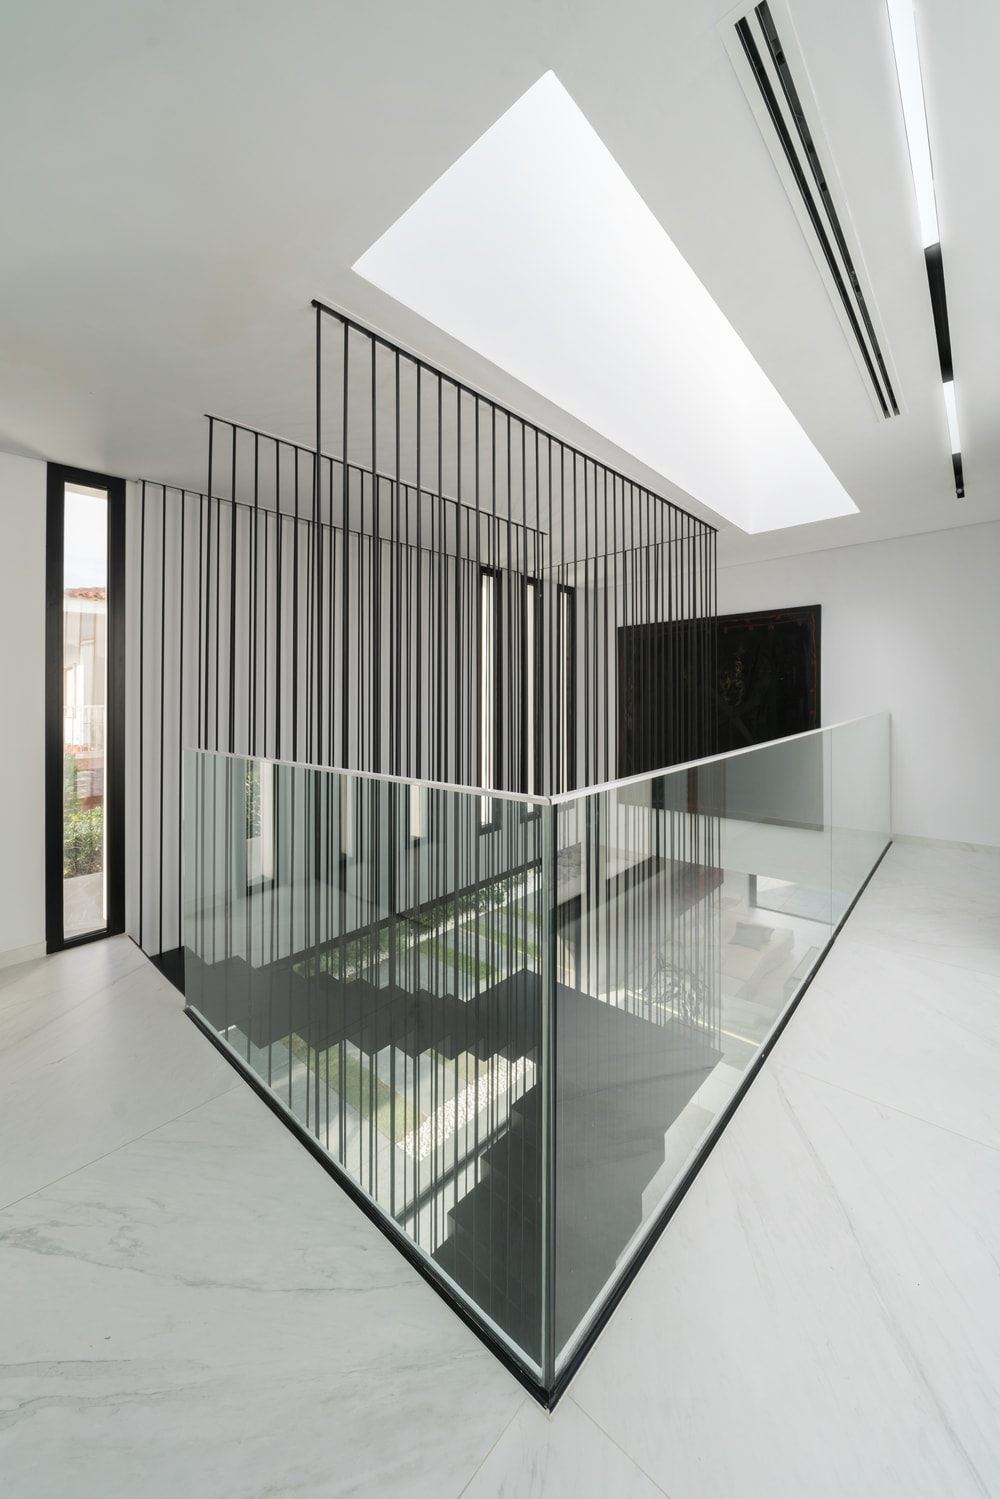 This angle showcases more of the glass railings of the indoor balcony. This allows for a bigger view of the staircase's tall ceiling.